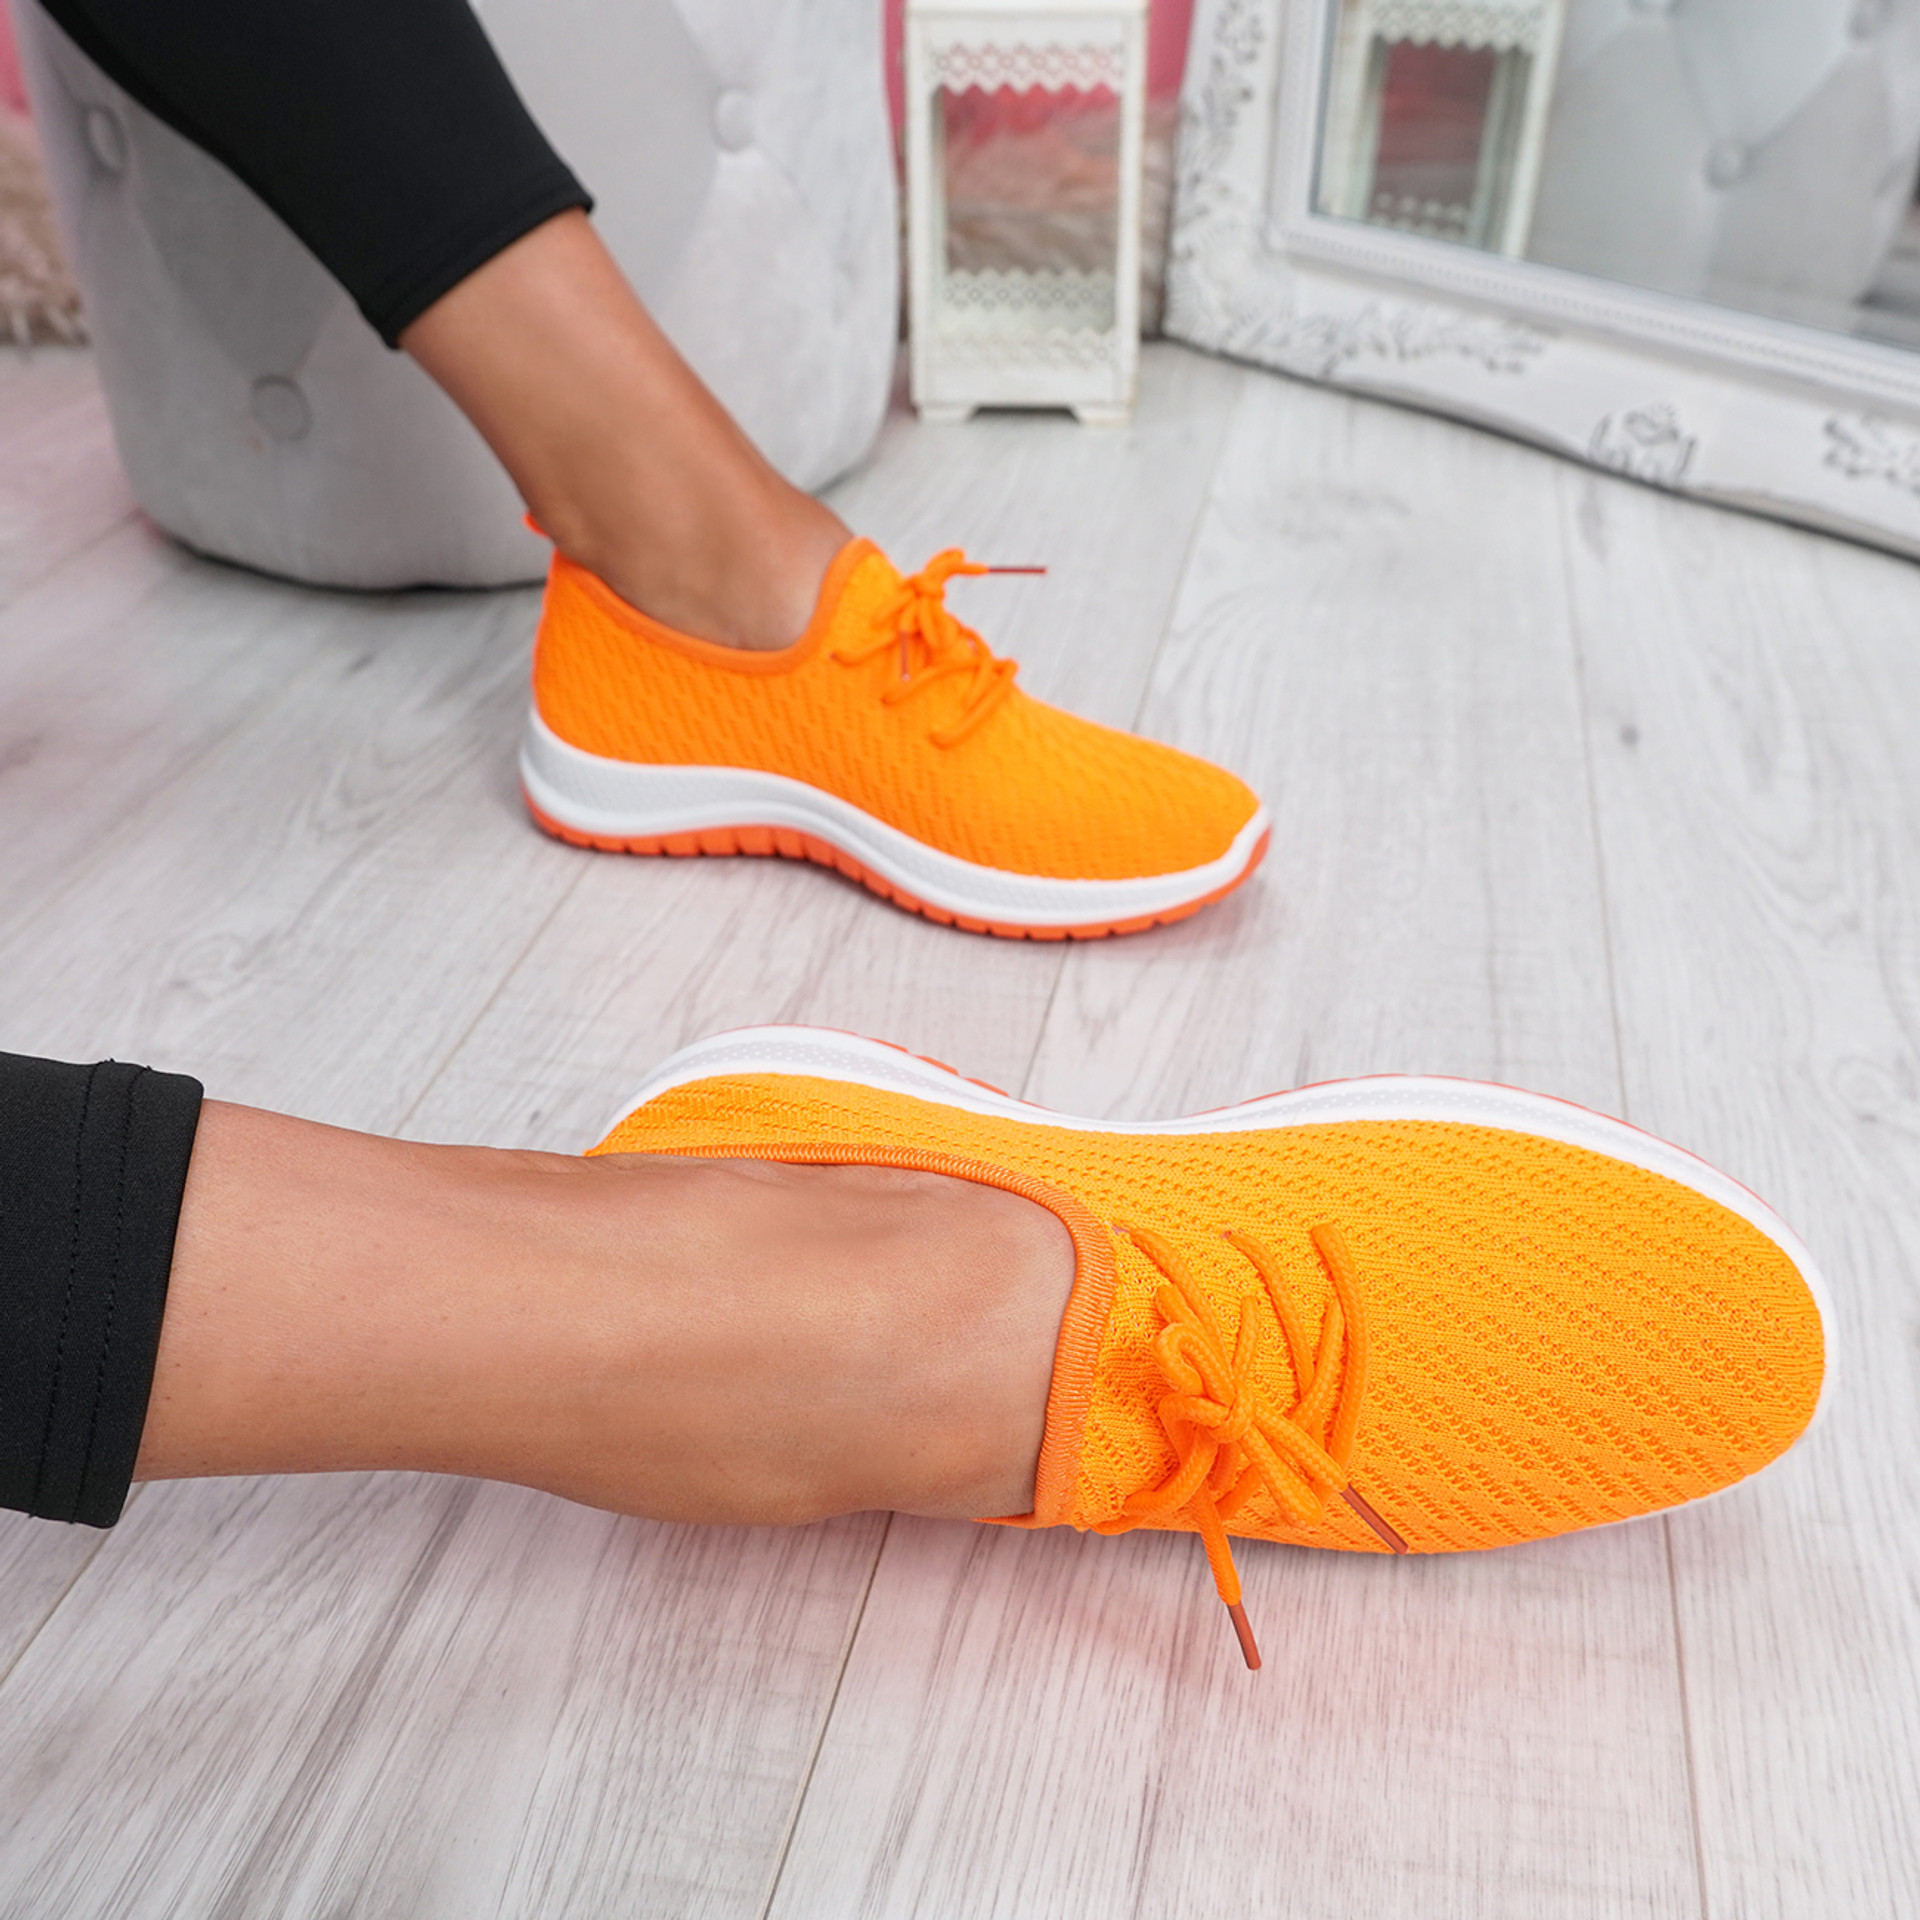 Ligy Orange Knit Lace Up Sneakers